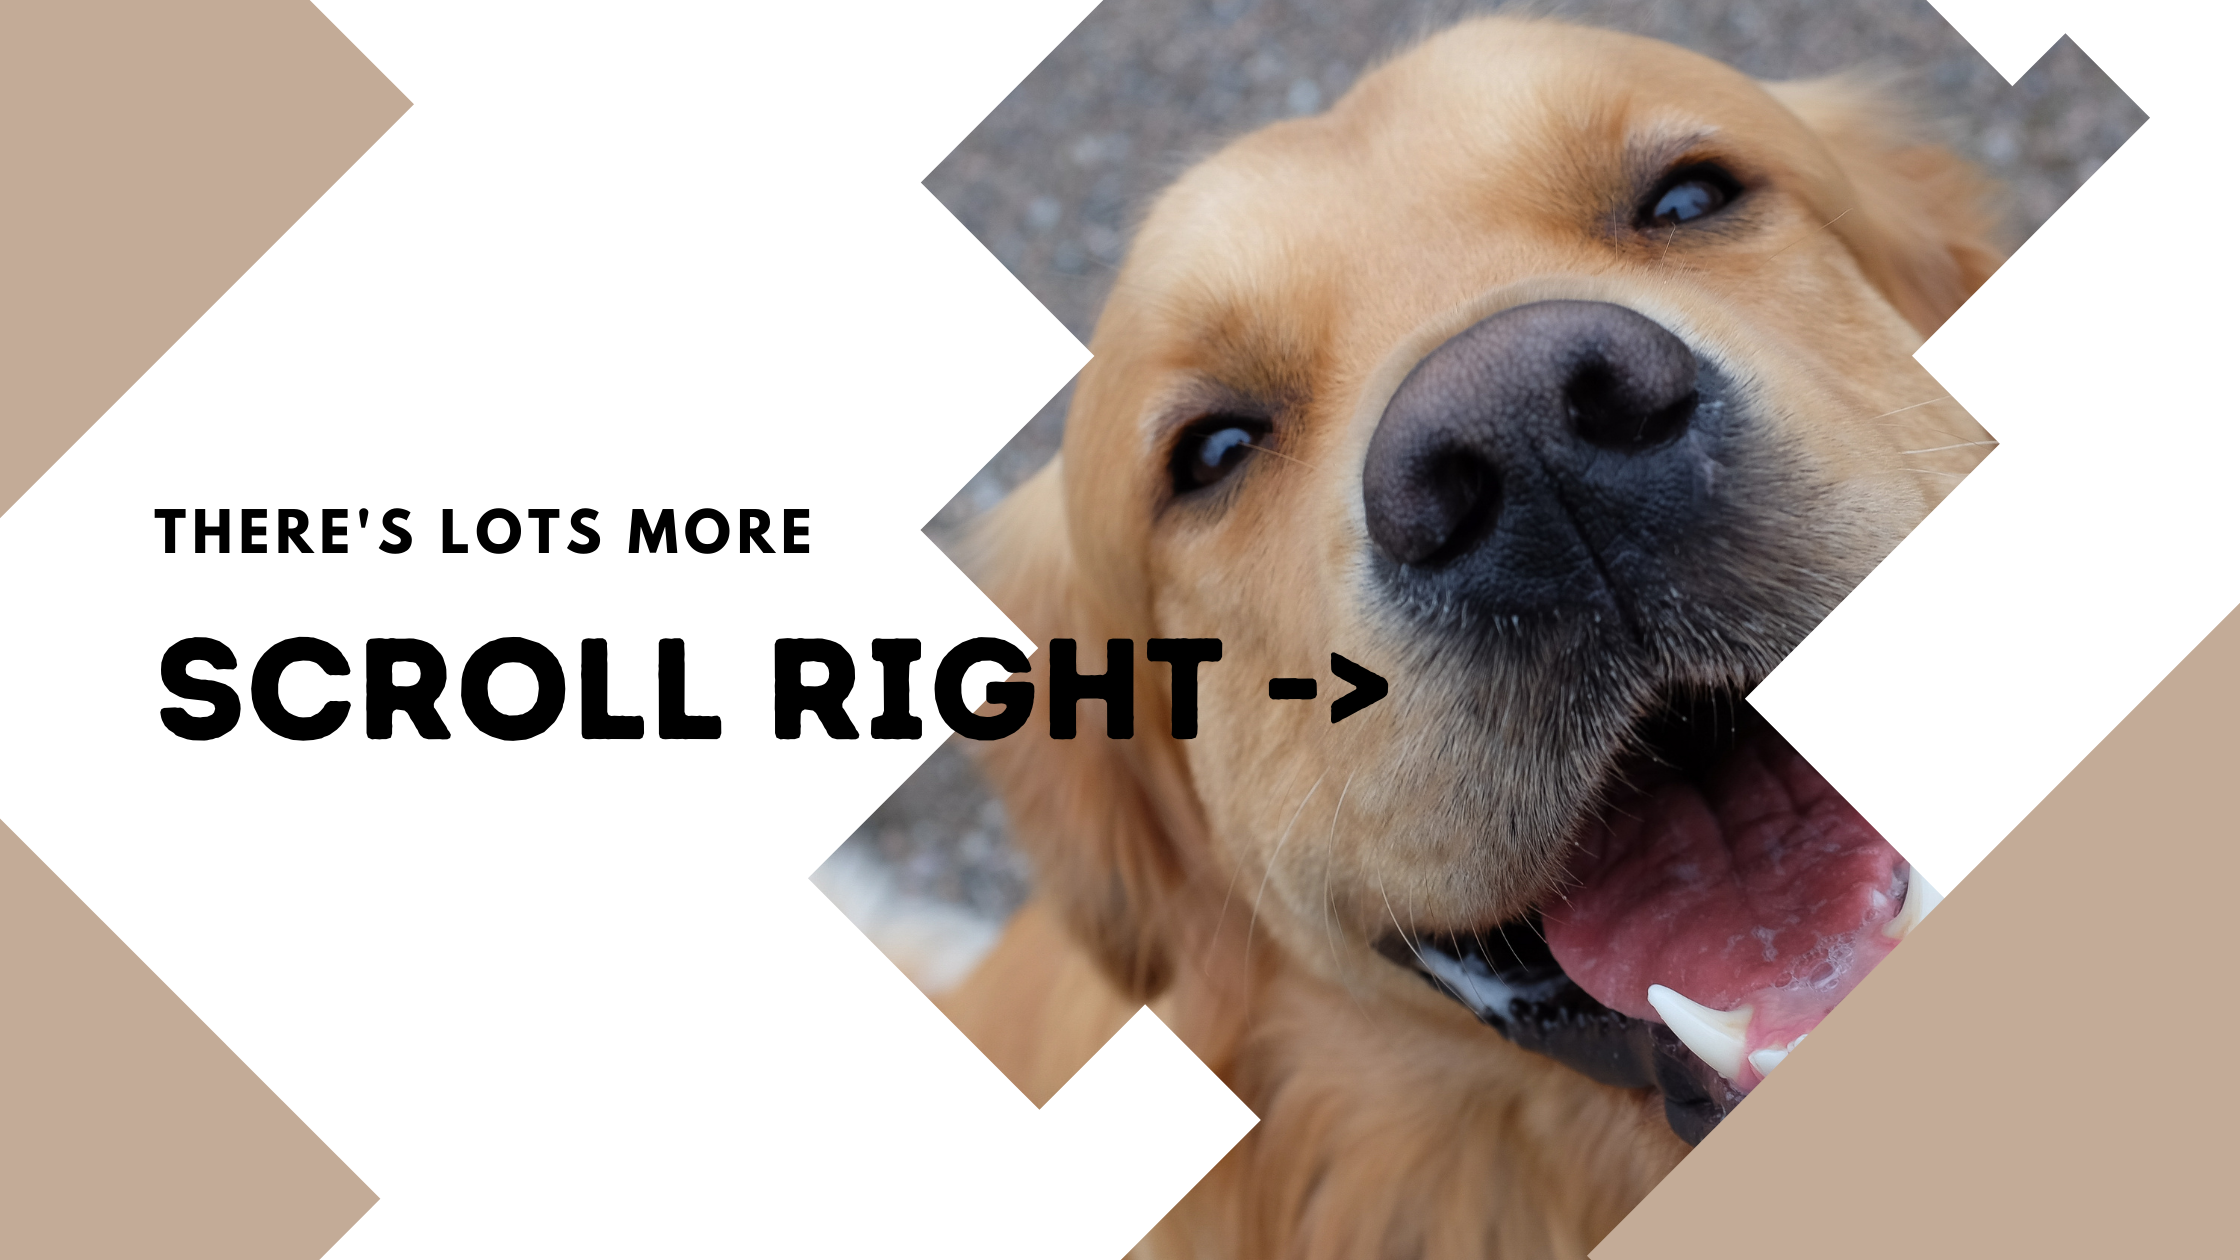 There's more - scroll right →